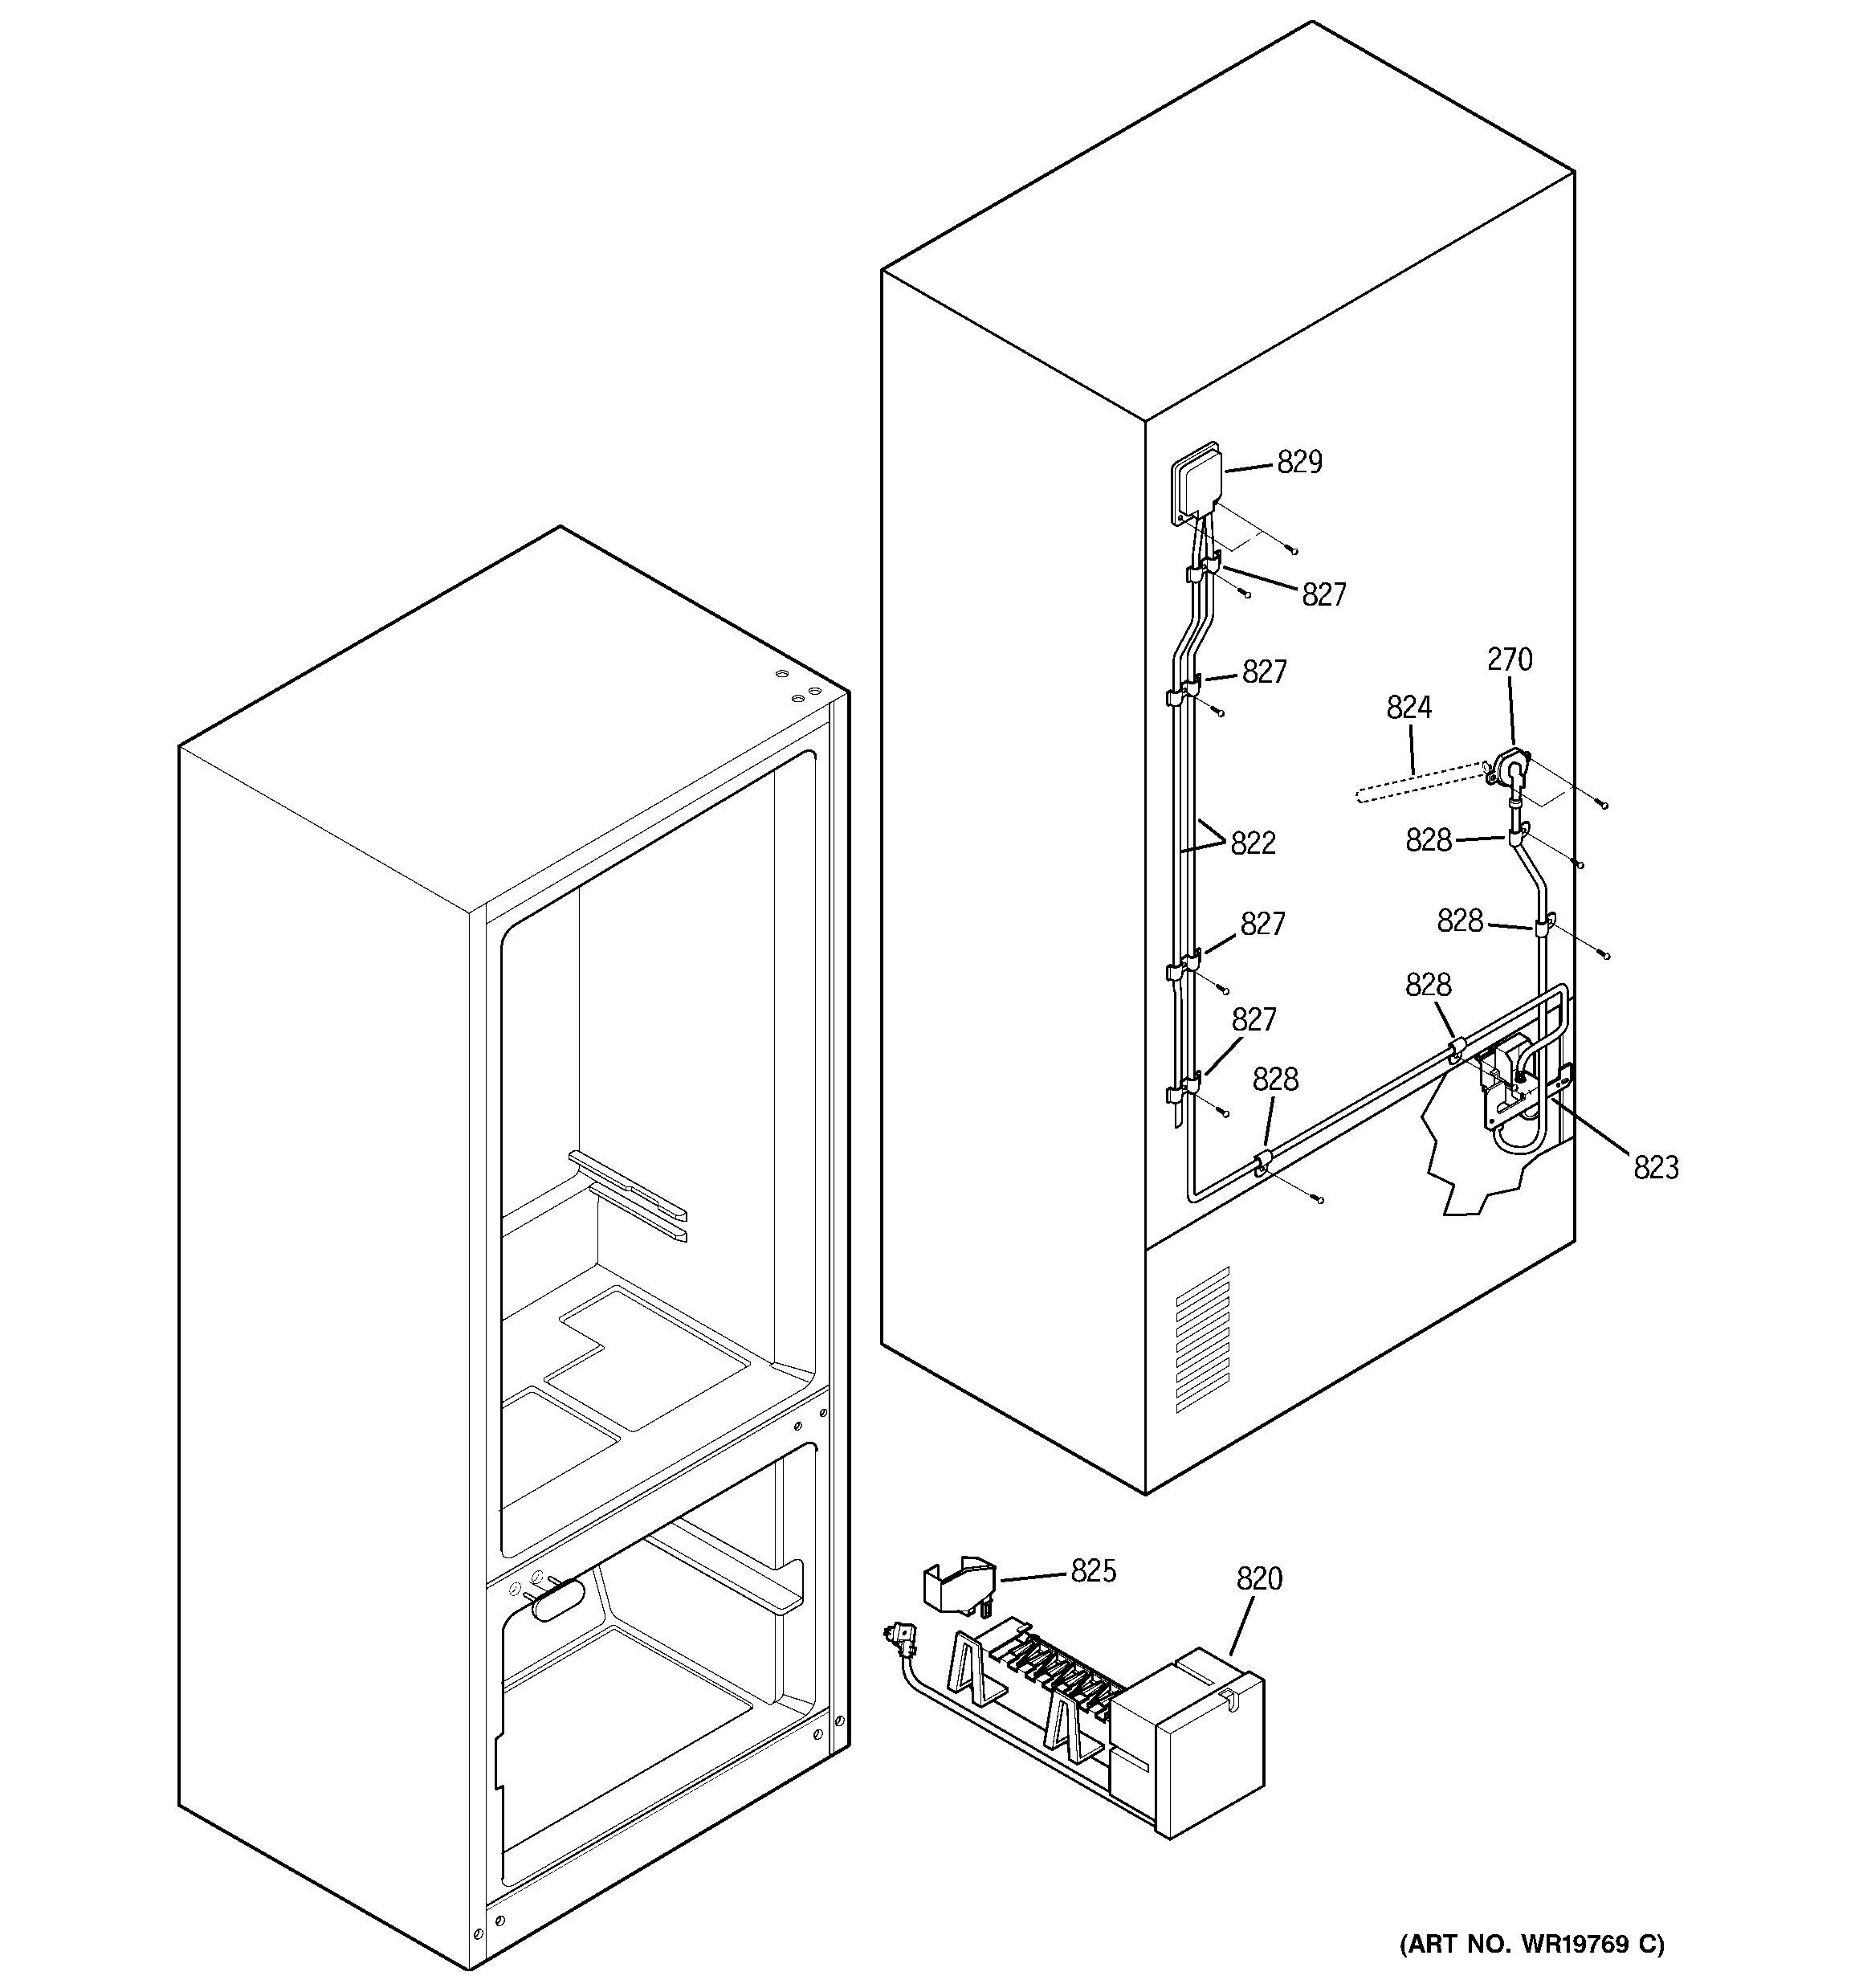 GE PDS20MCRAWW water system diagram